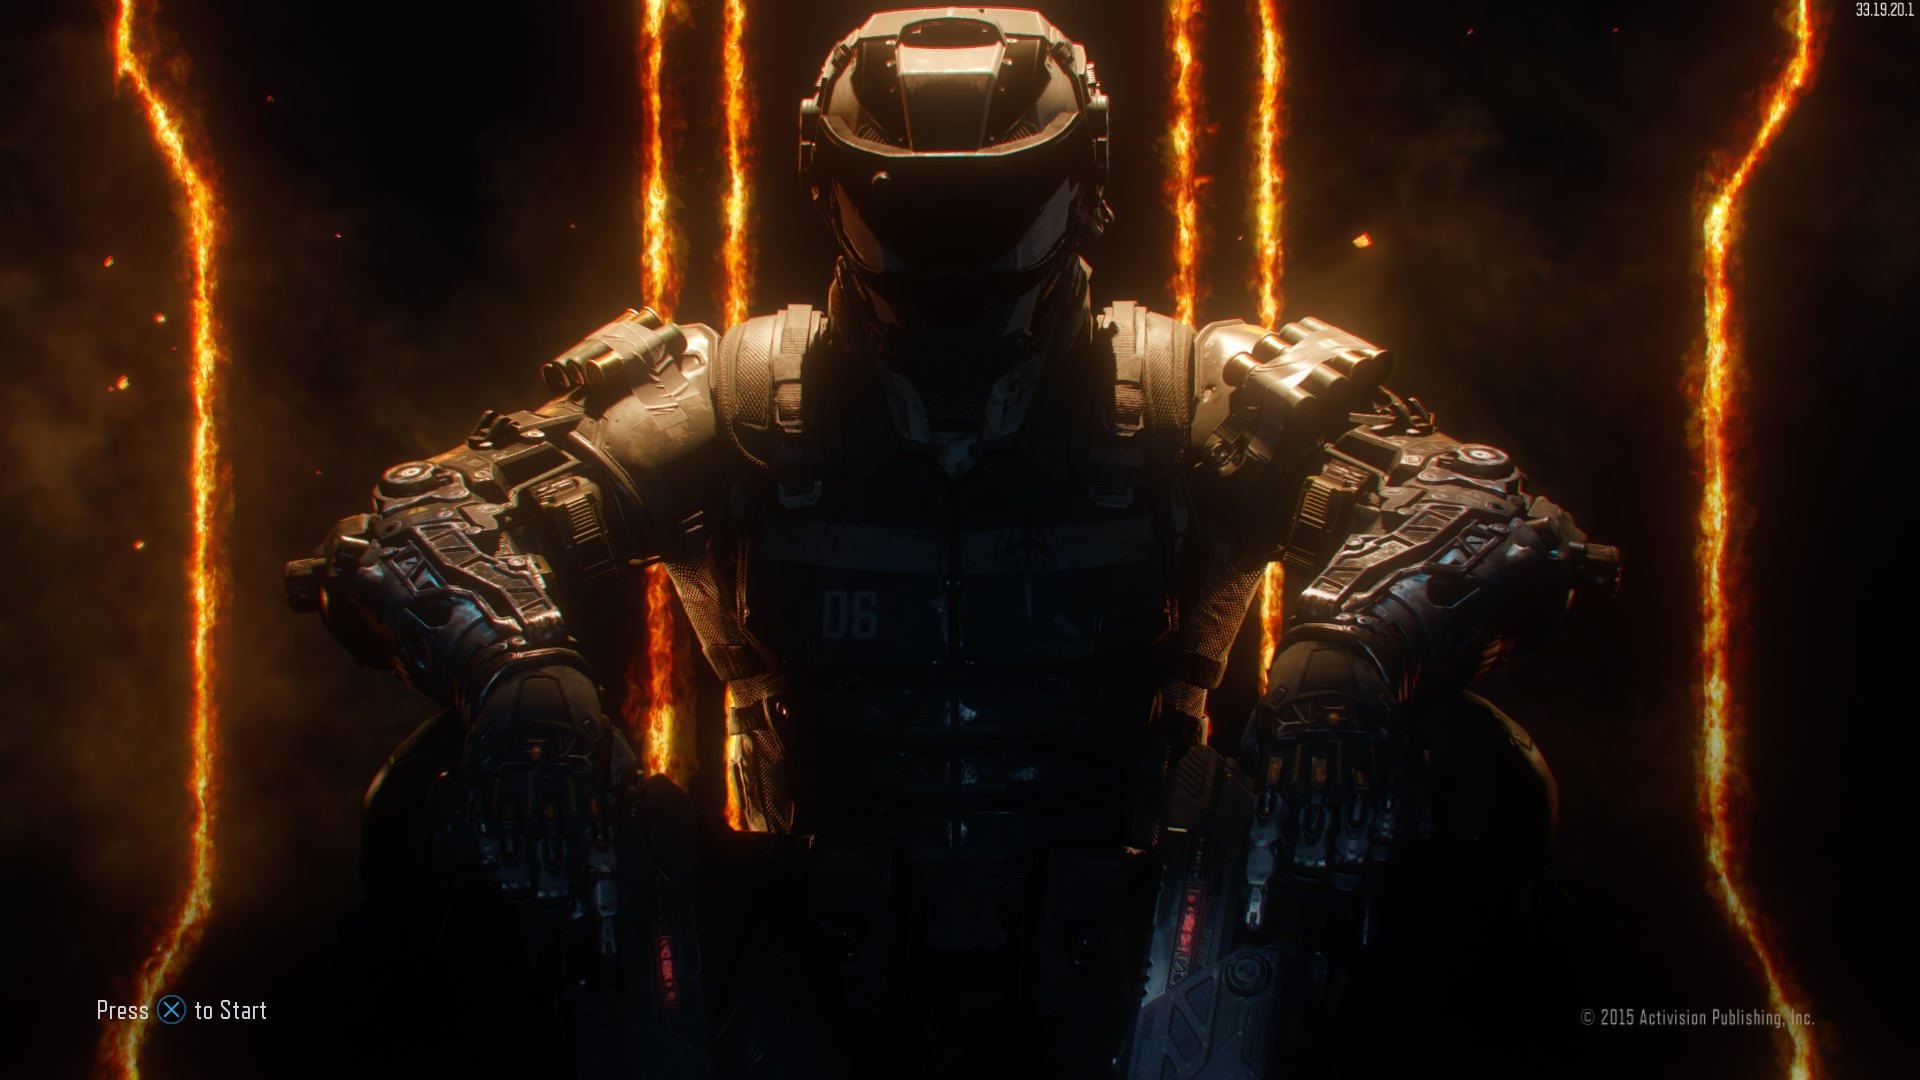 Call Of Duty Black Ops 3 Hd Wallpapers: Call Of Duty: Black Ops 3 Review